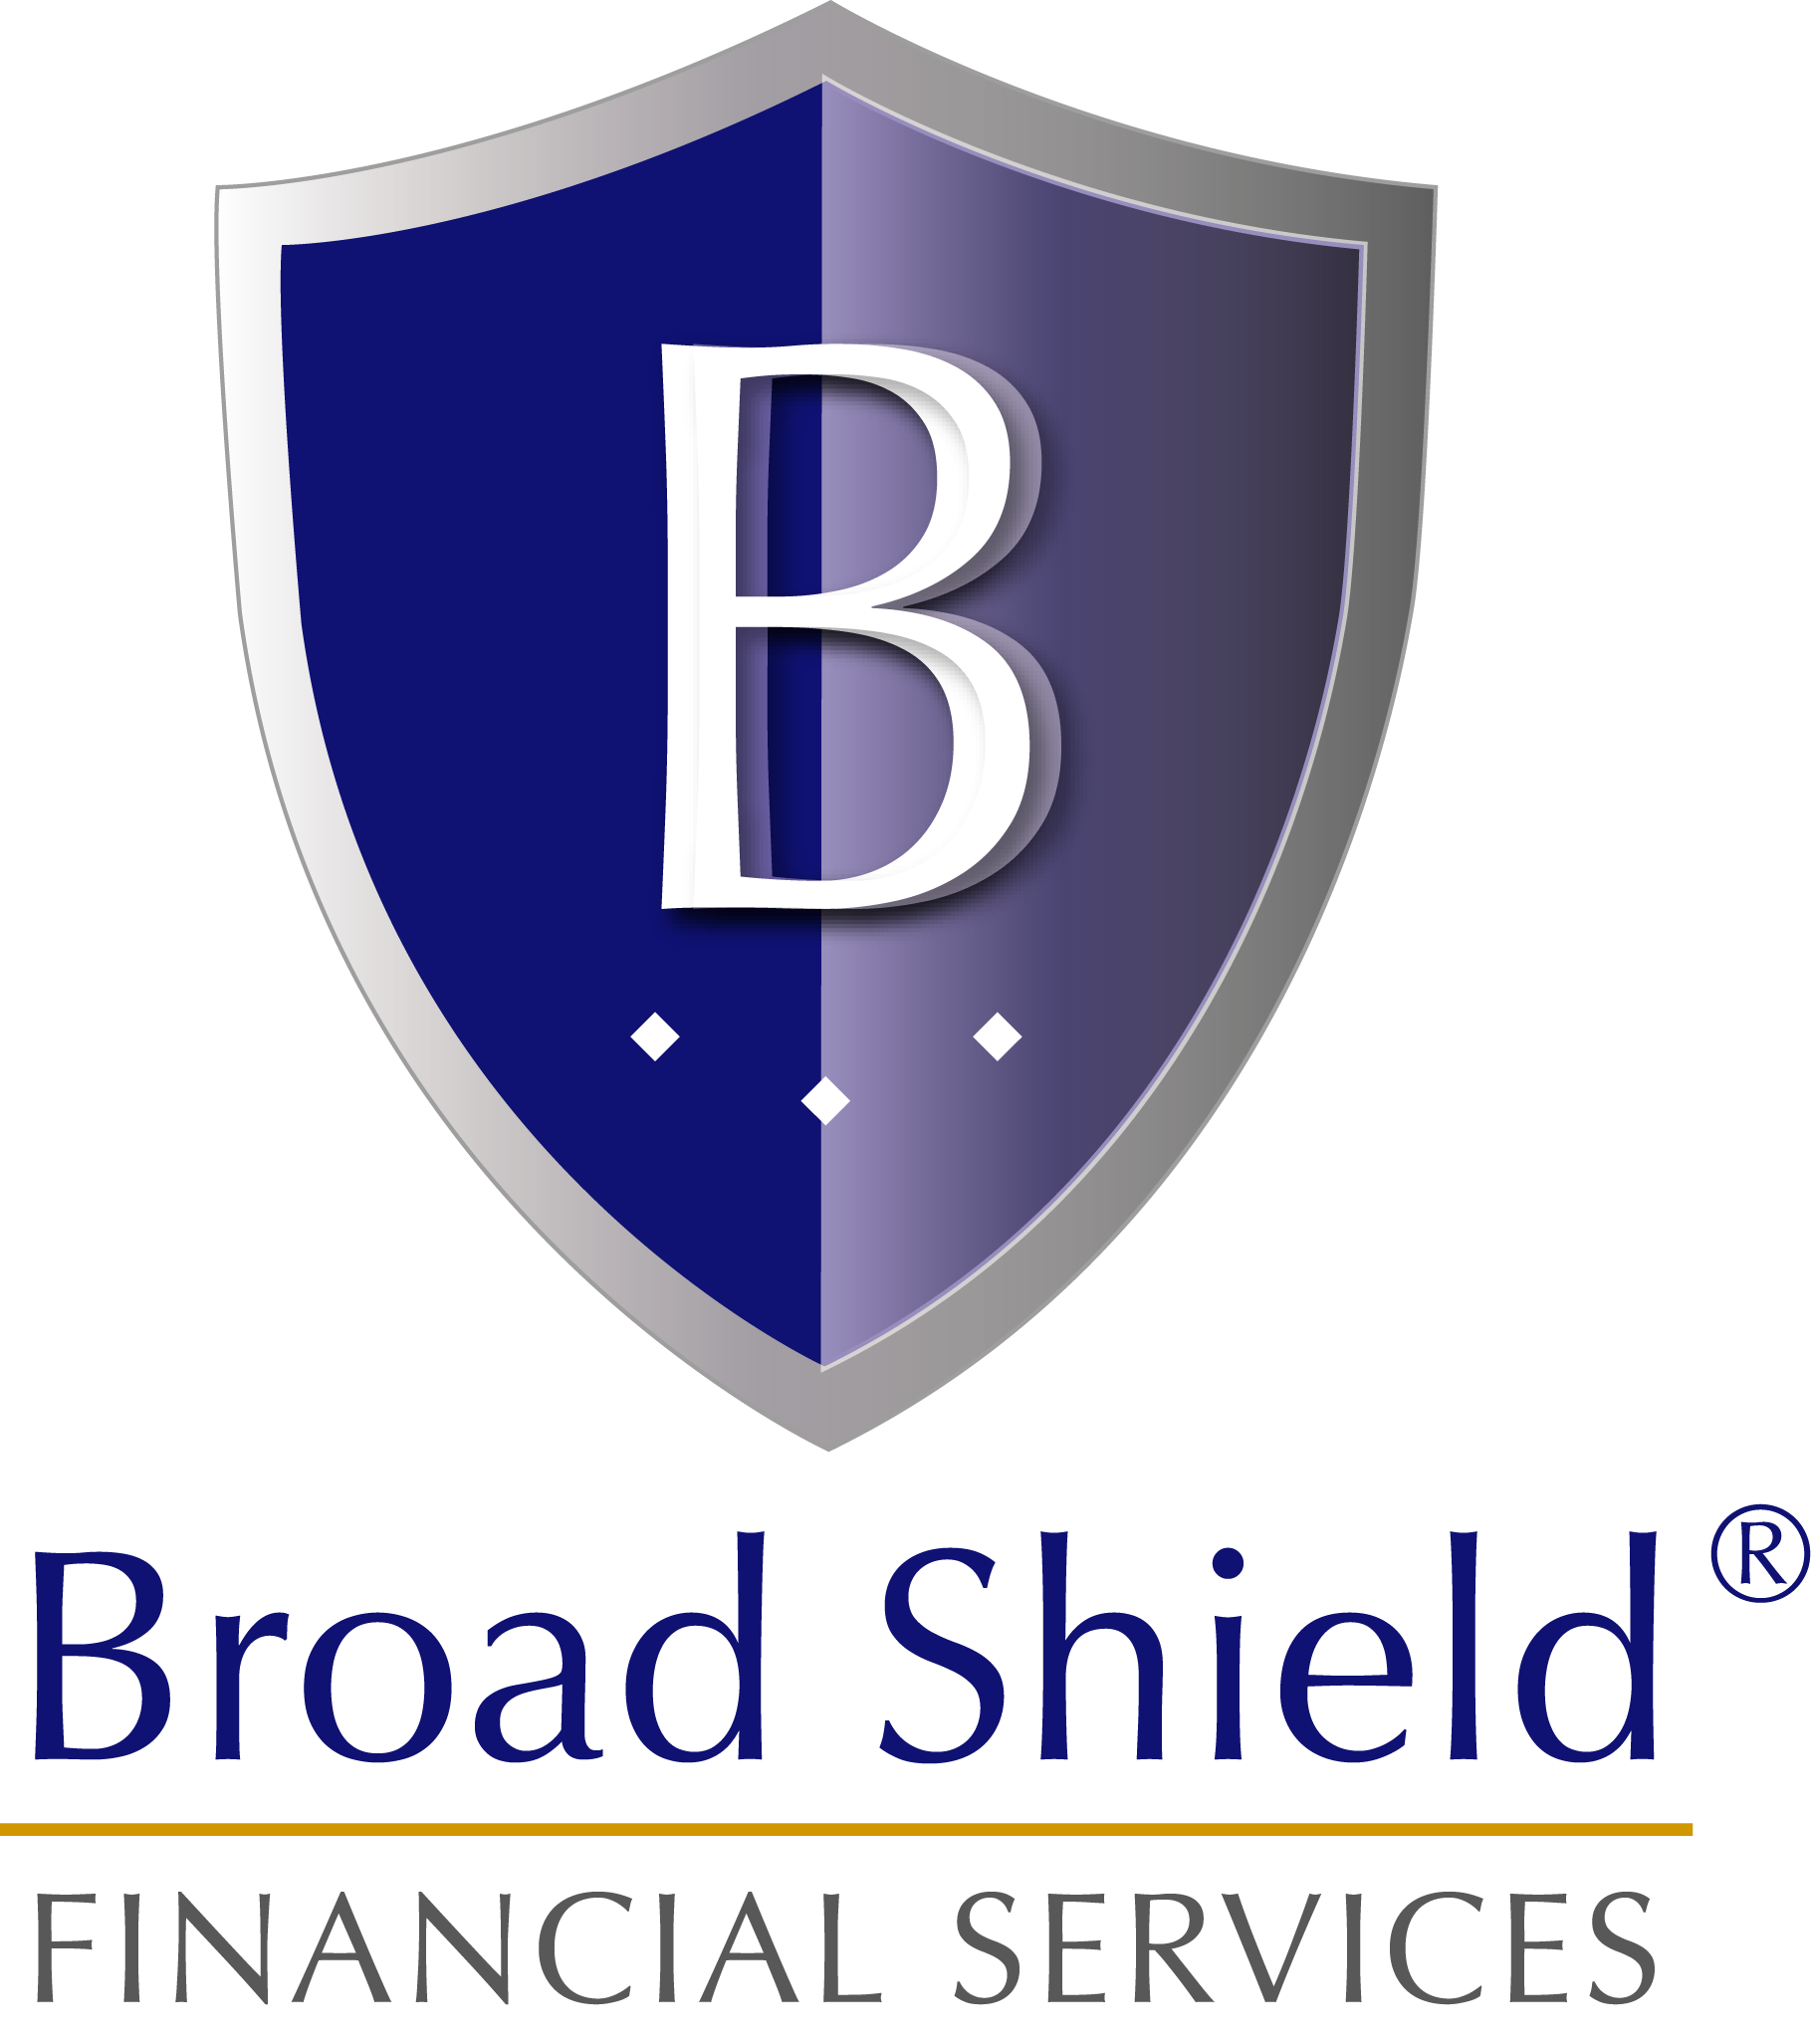 Logo for Broad Shield Financial Services Inc.